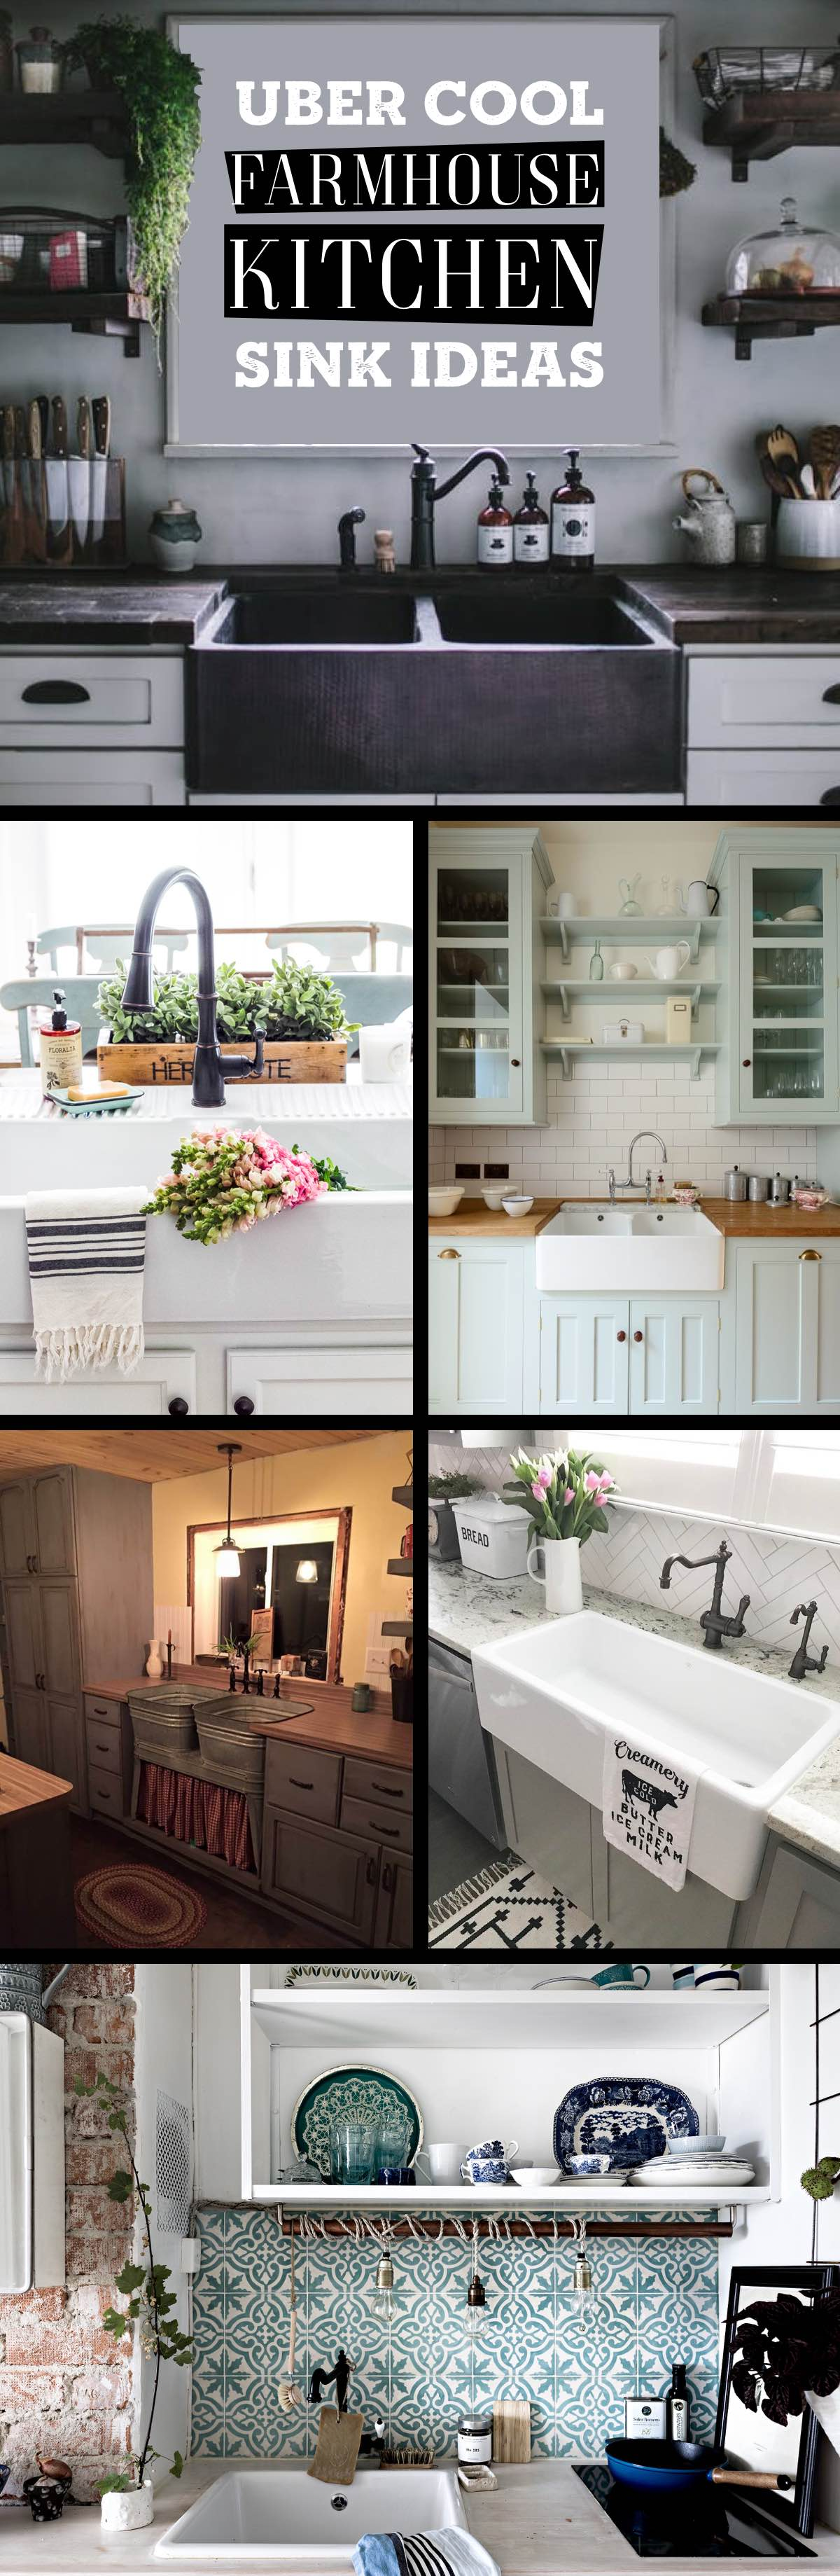 19 Cool Farmhouse Kitchen Sink Ideas That are Versatile ... on Farmhouse Kitchen Sink Ideas  id=95253